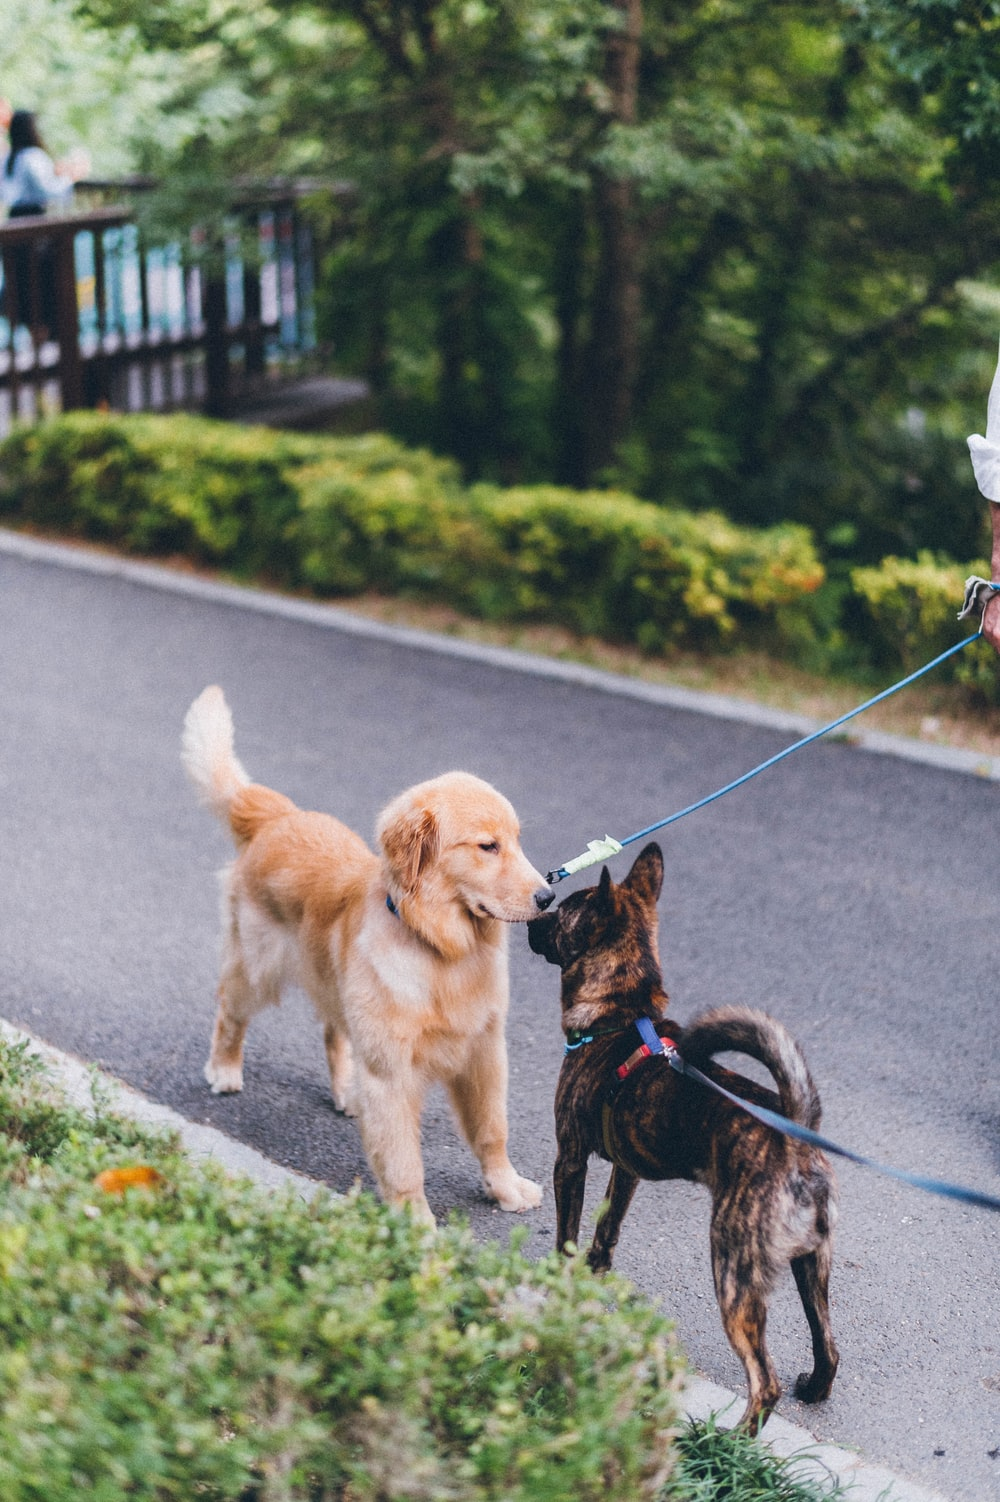 golden retriever puppy with leash on road during daytime